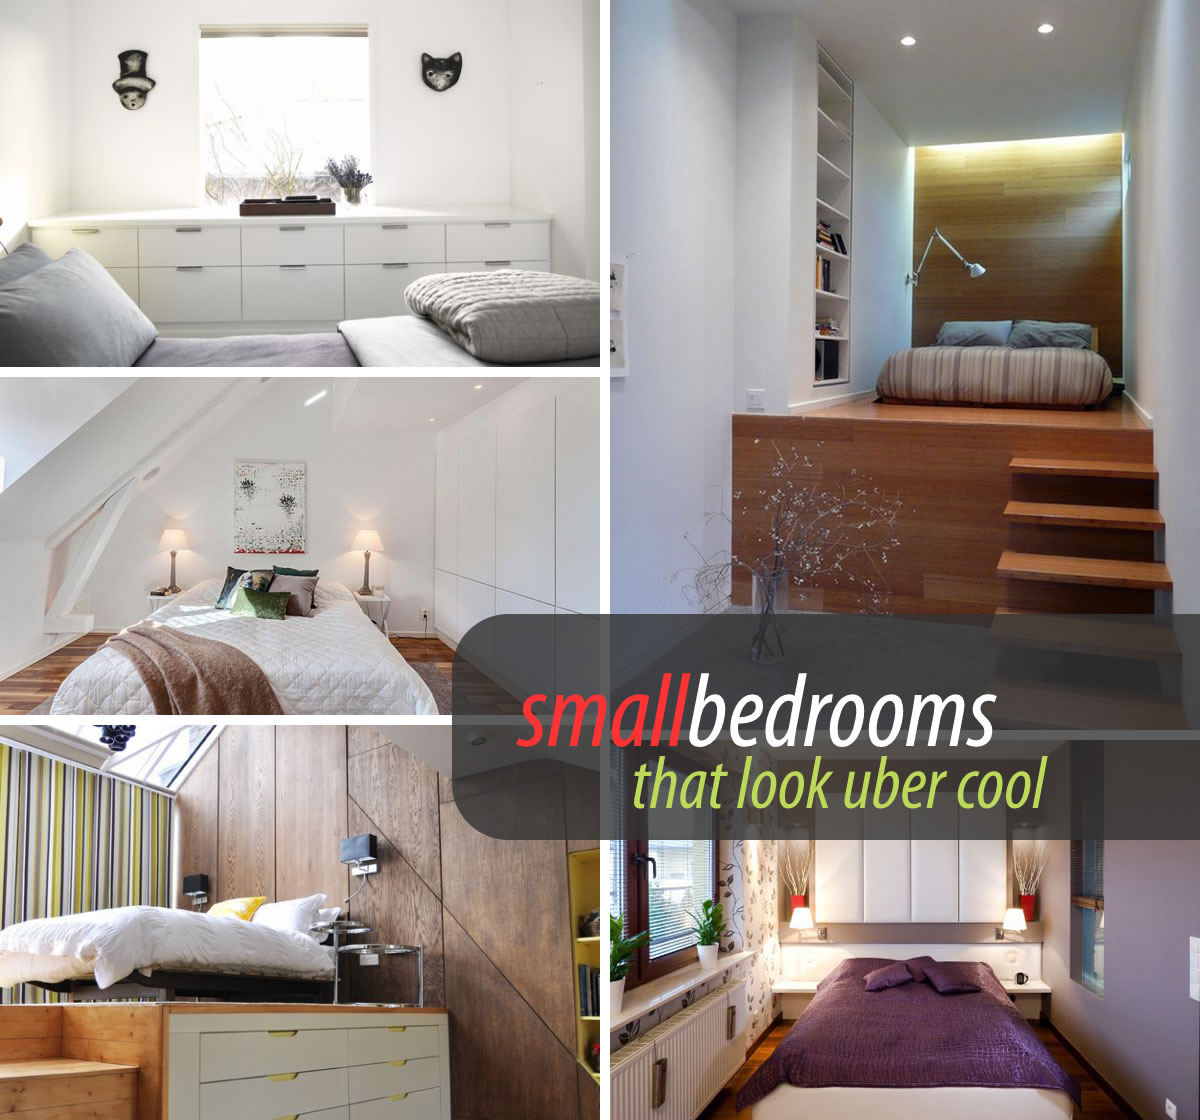 Small Bedroom Big Heart And Lots Of Storage: 45 Small Bedroom Design Ideas And Inspiration